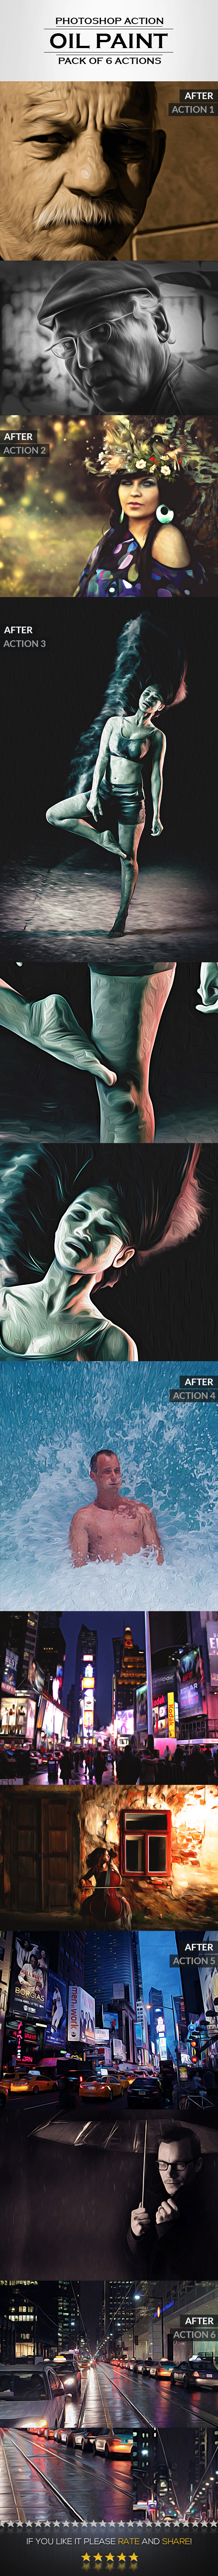 GraphicRiver Oil Painting Photo Actions 8899257